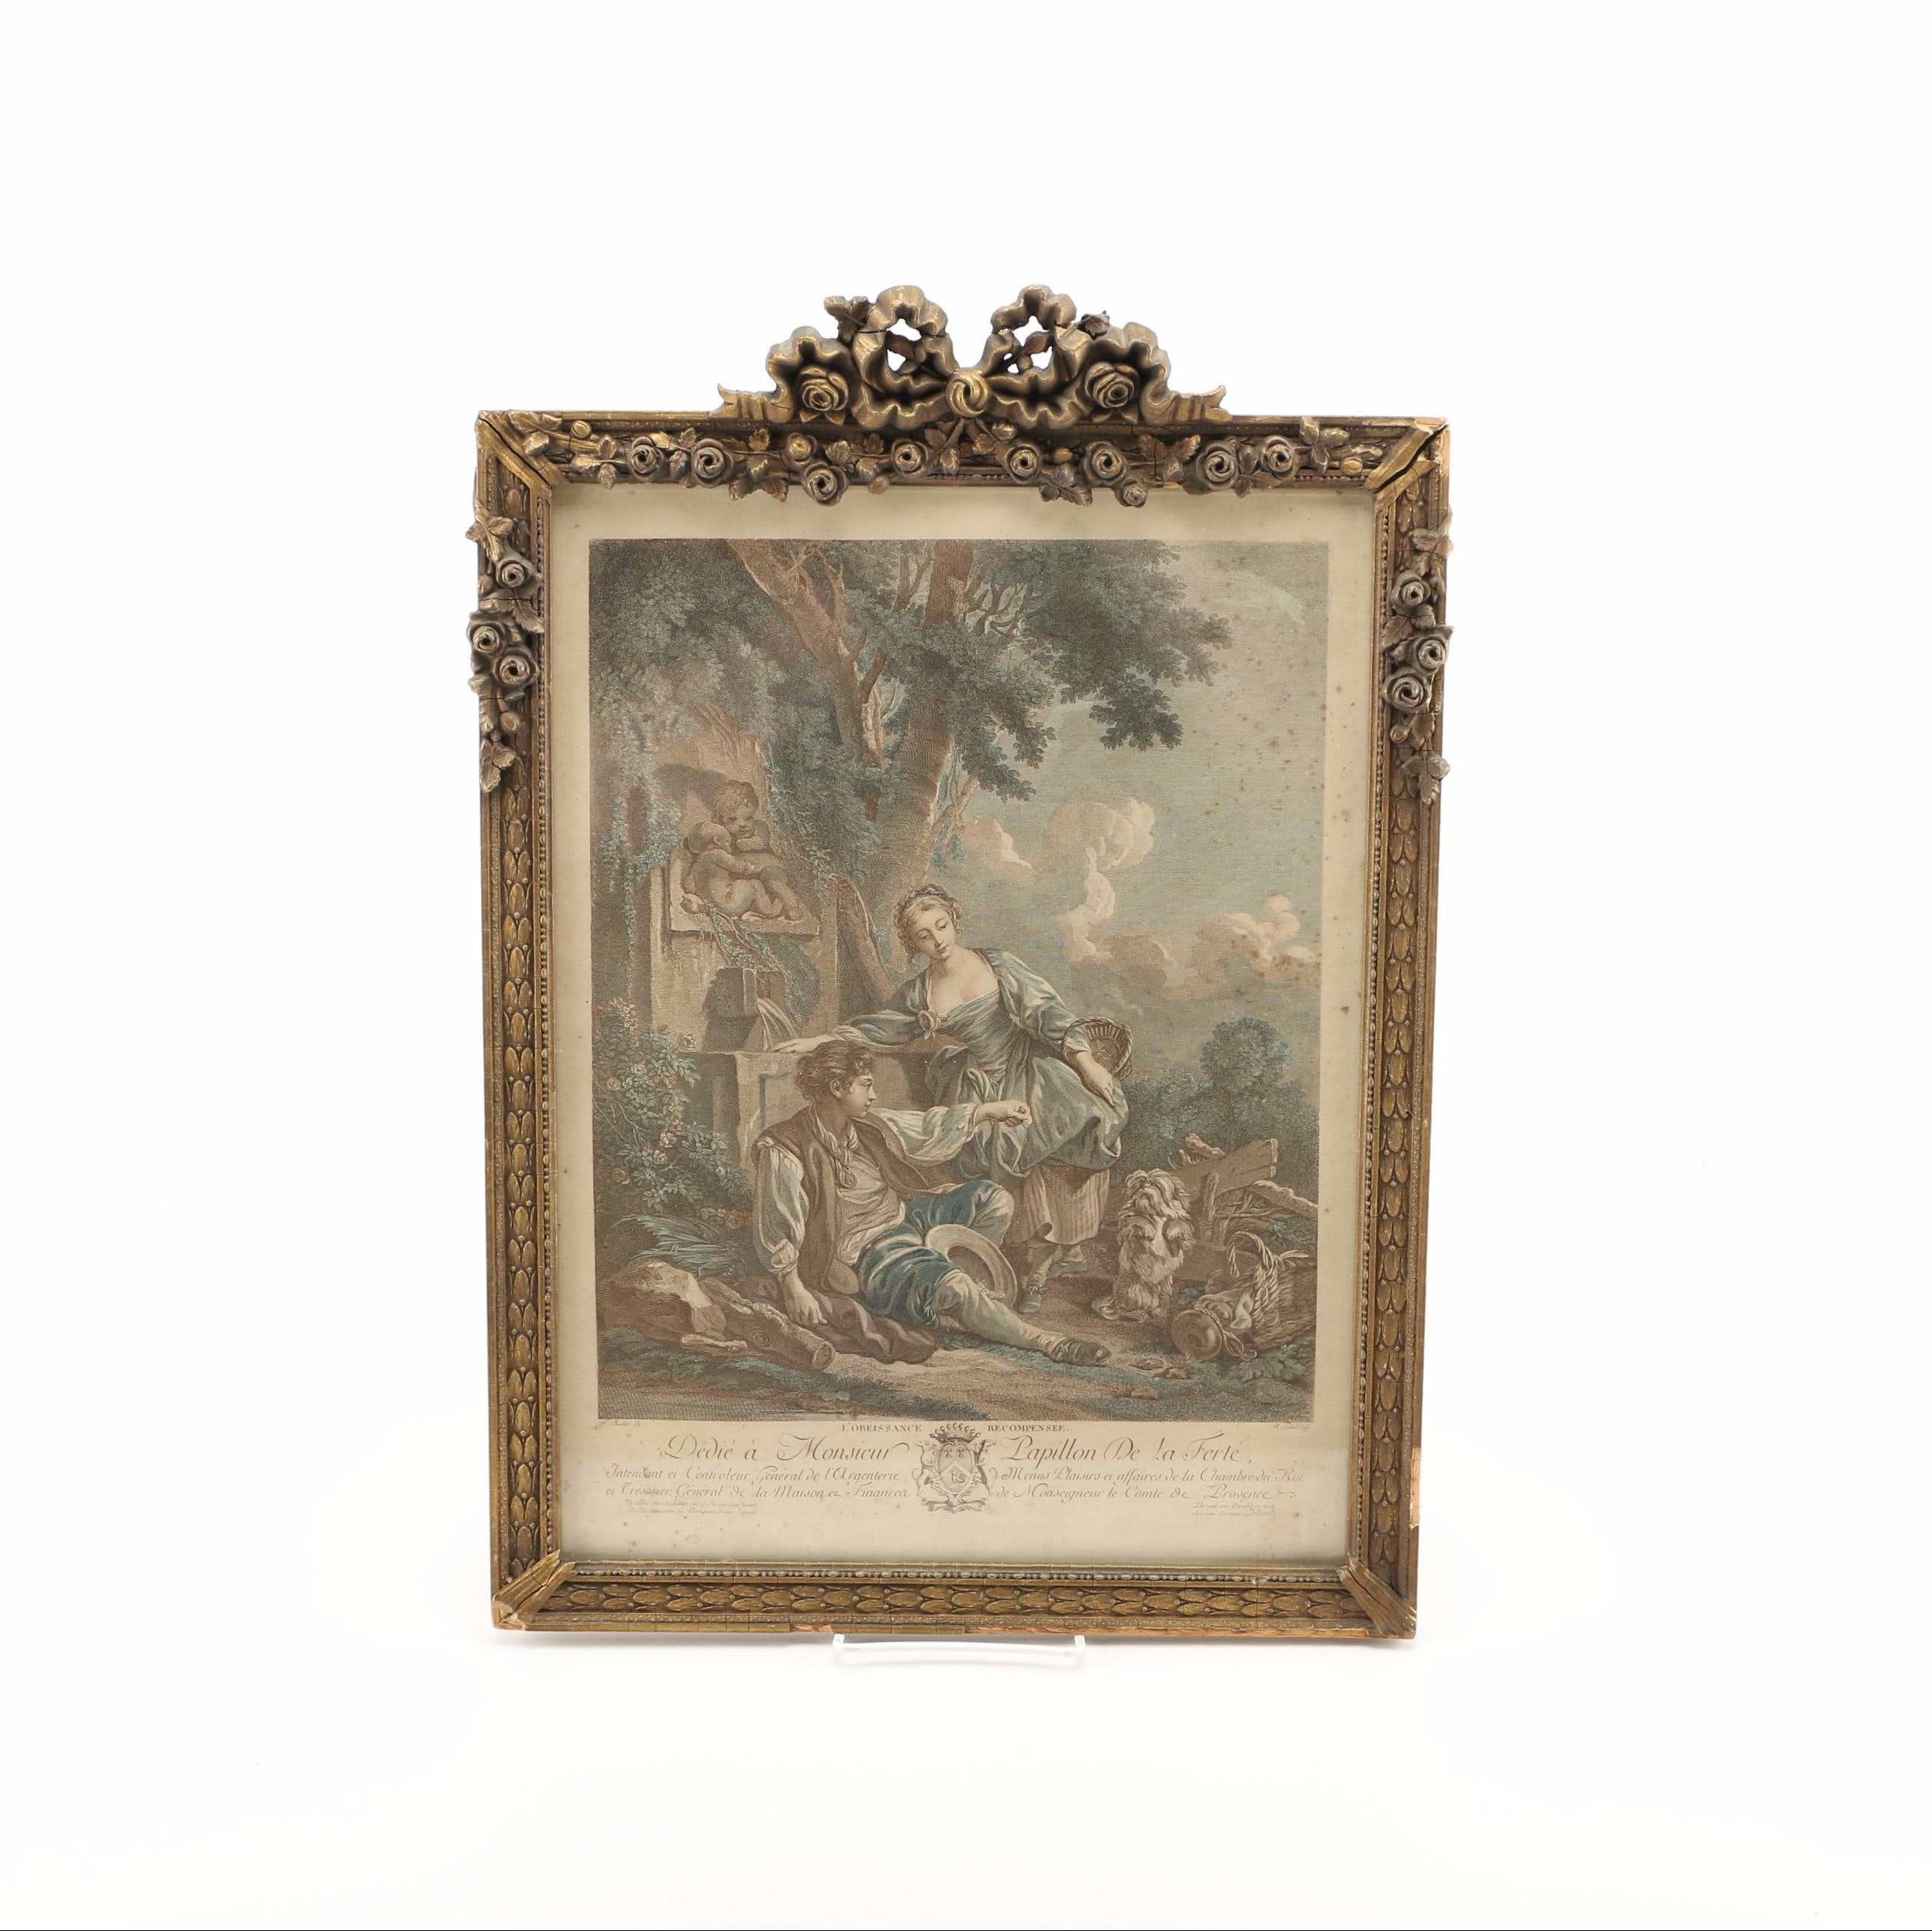 """Hand-Colored Lithograph Print on Paper after François Boucher """"l'Obeissance Recompensee"""""""